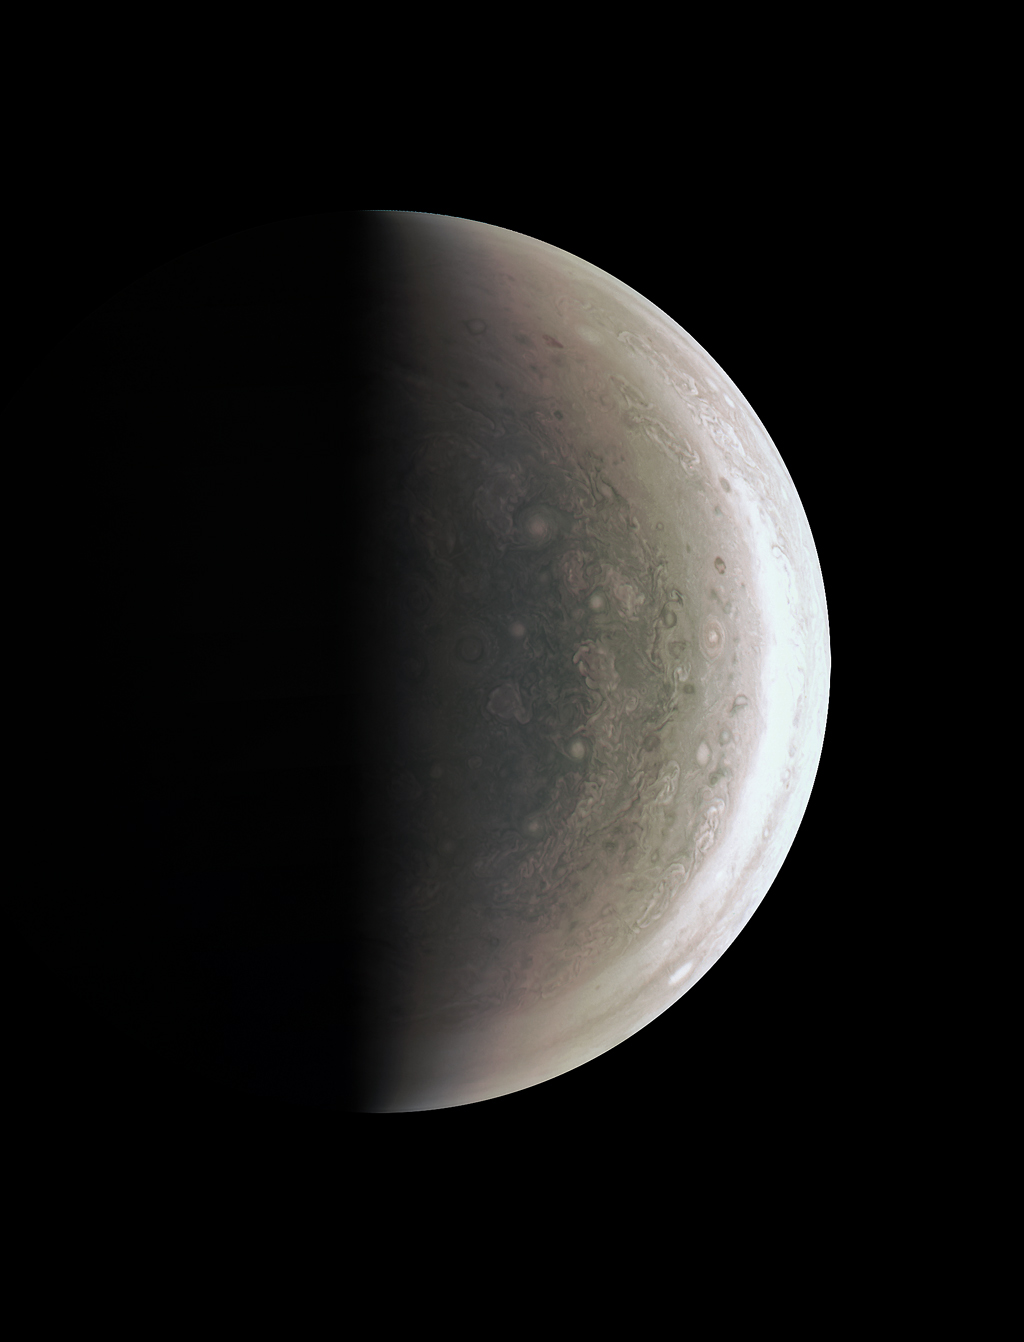 Photos: NASA's Juno Mission to Jupiter